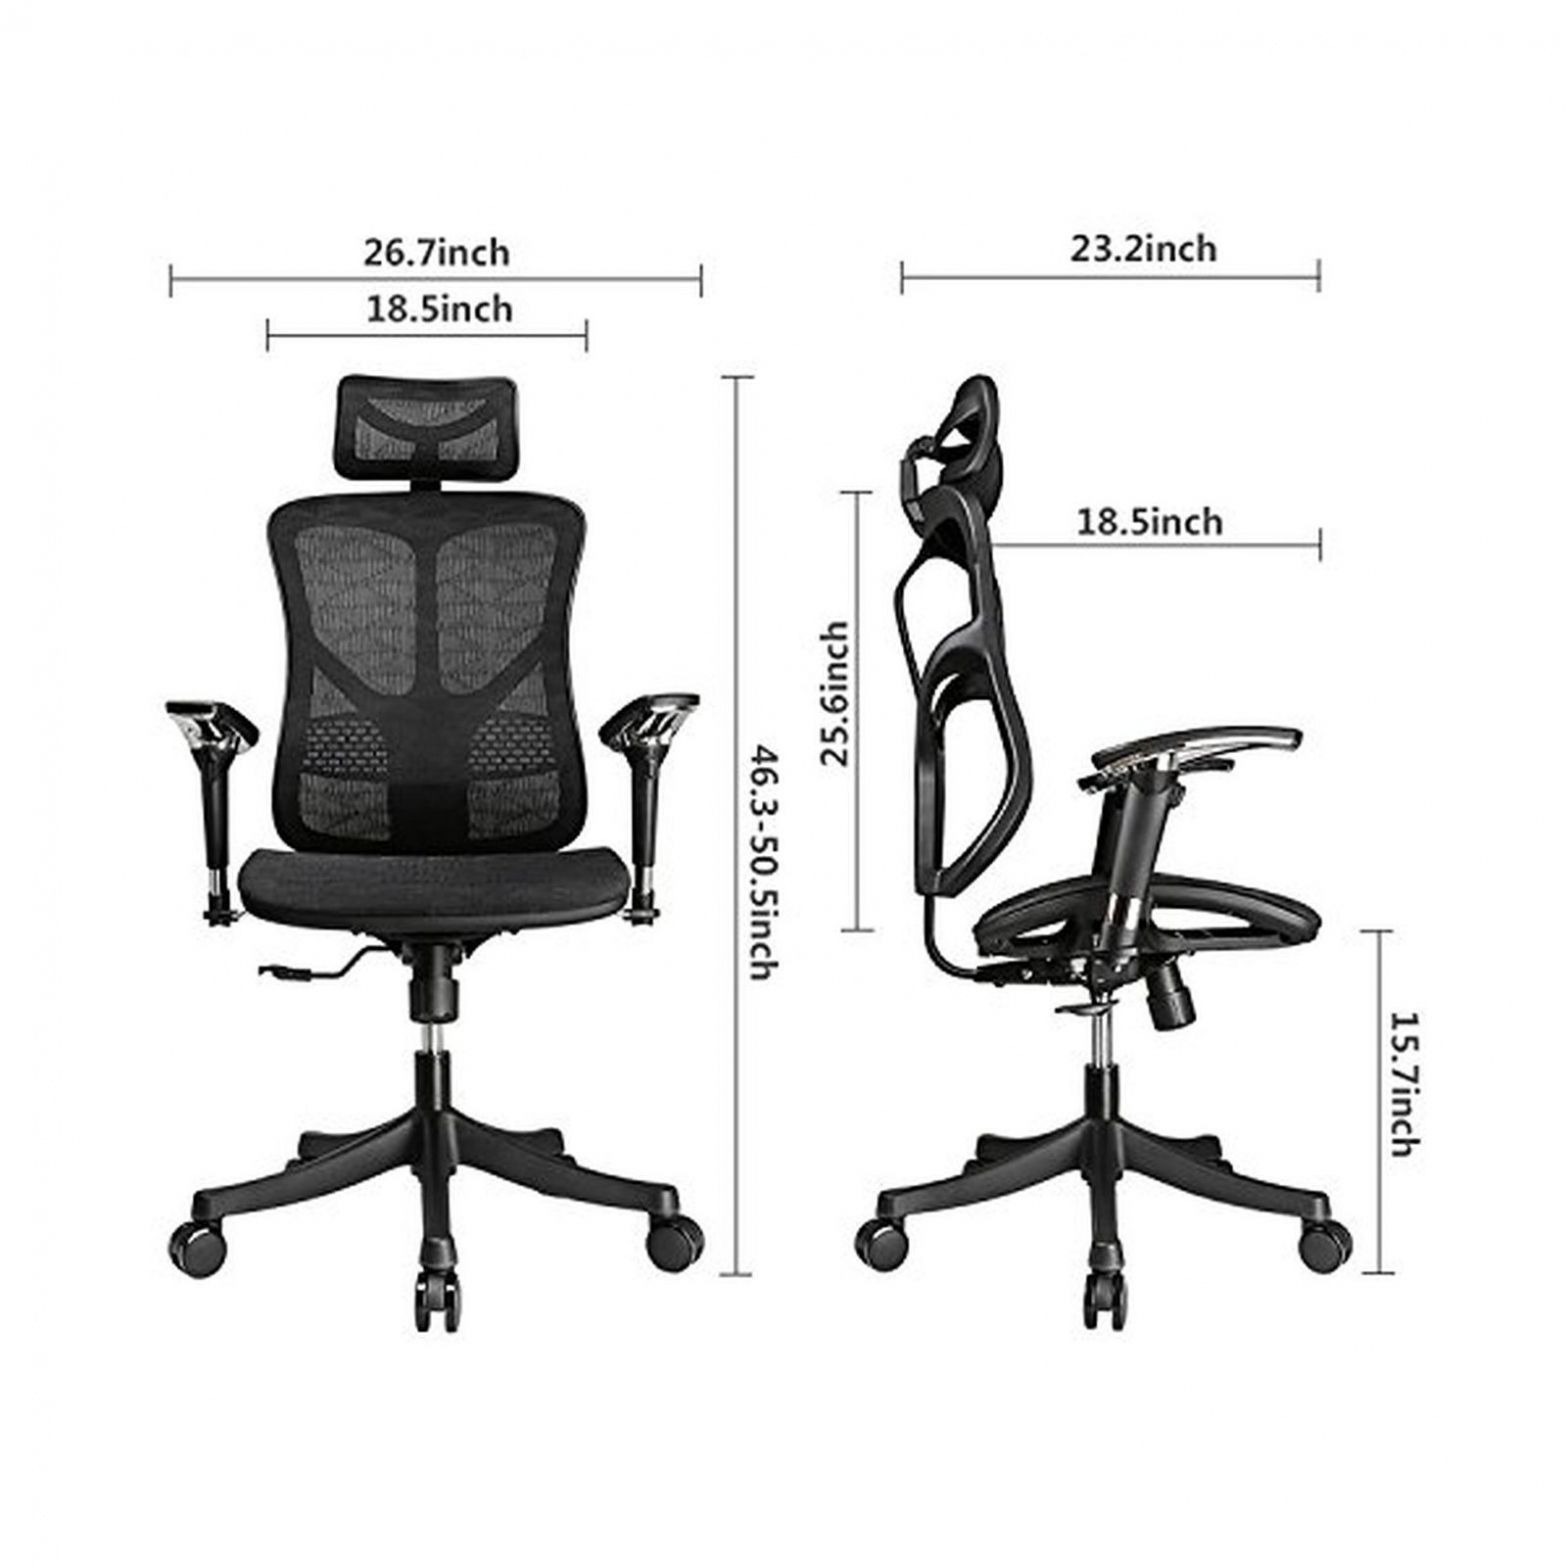 55 Argomax Mesh Ergonomic fice Chair Em Ec001 Home fice Furniture Ideas Check more